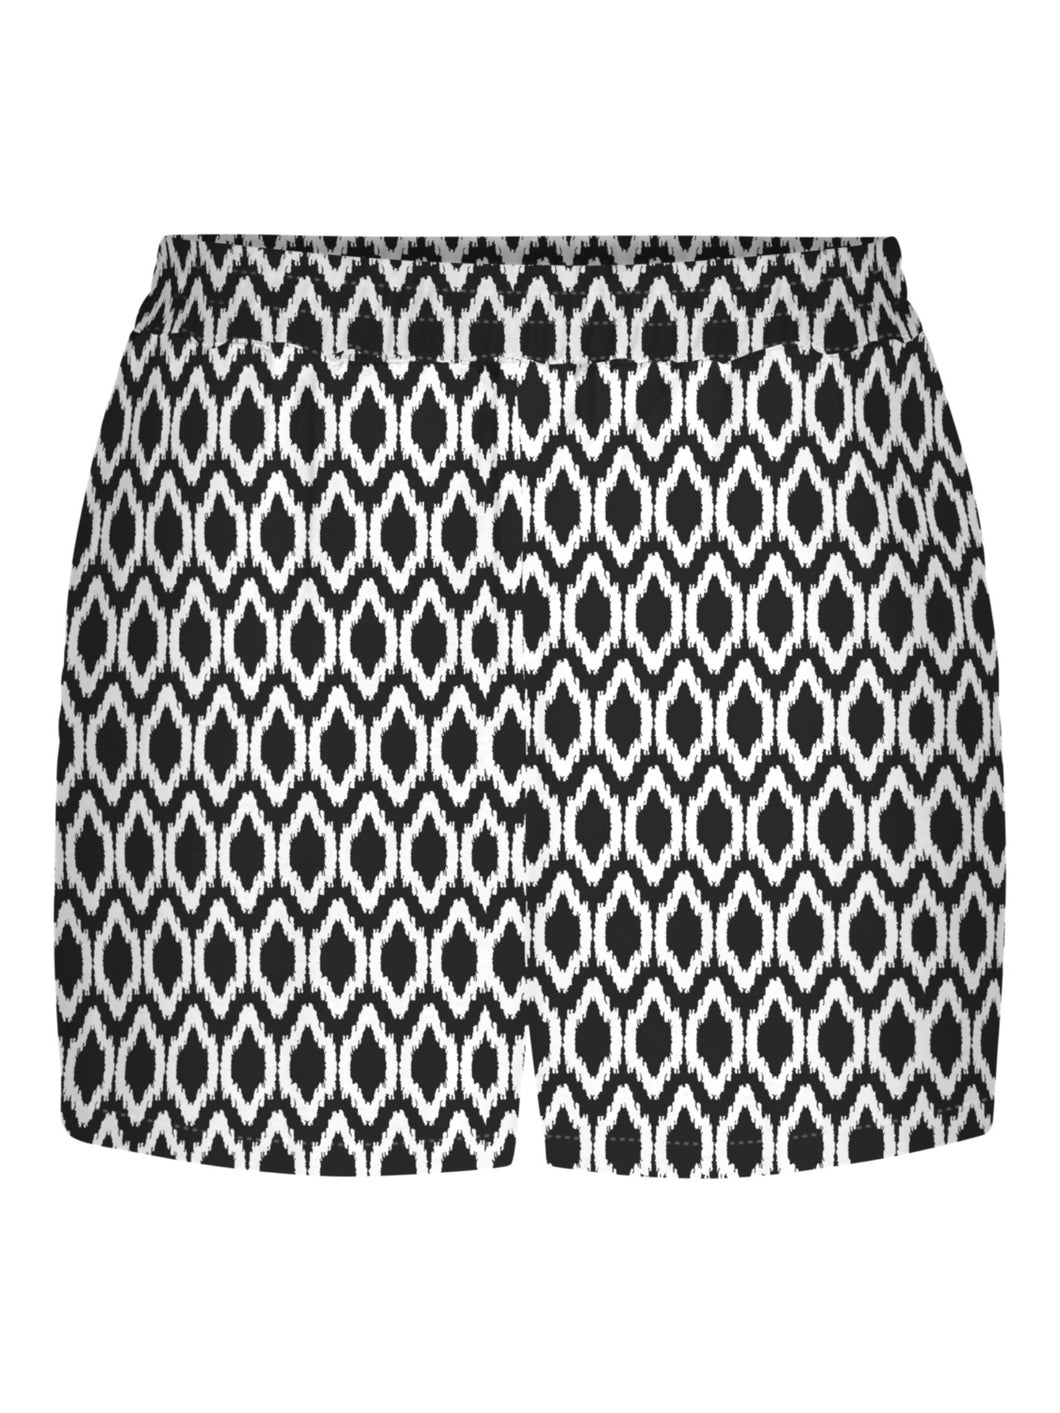 Nova Lux Shorts - Black/Graphic / 34 - SHORTS 34, 36, 38,